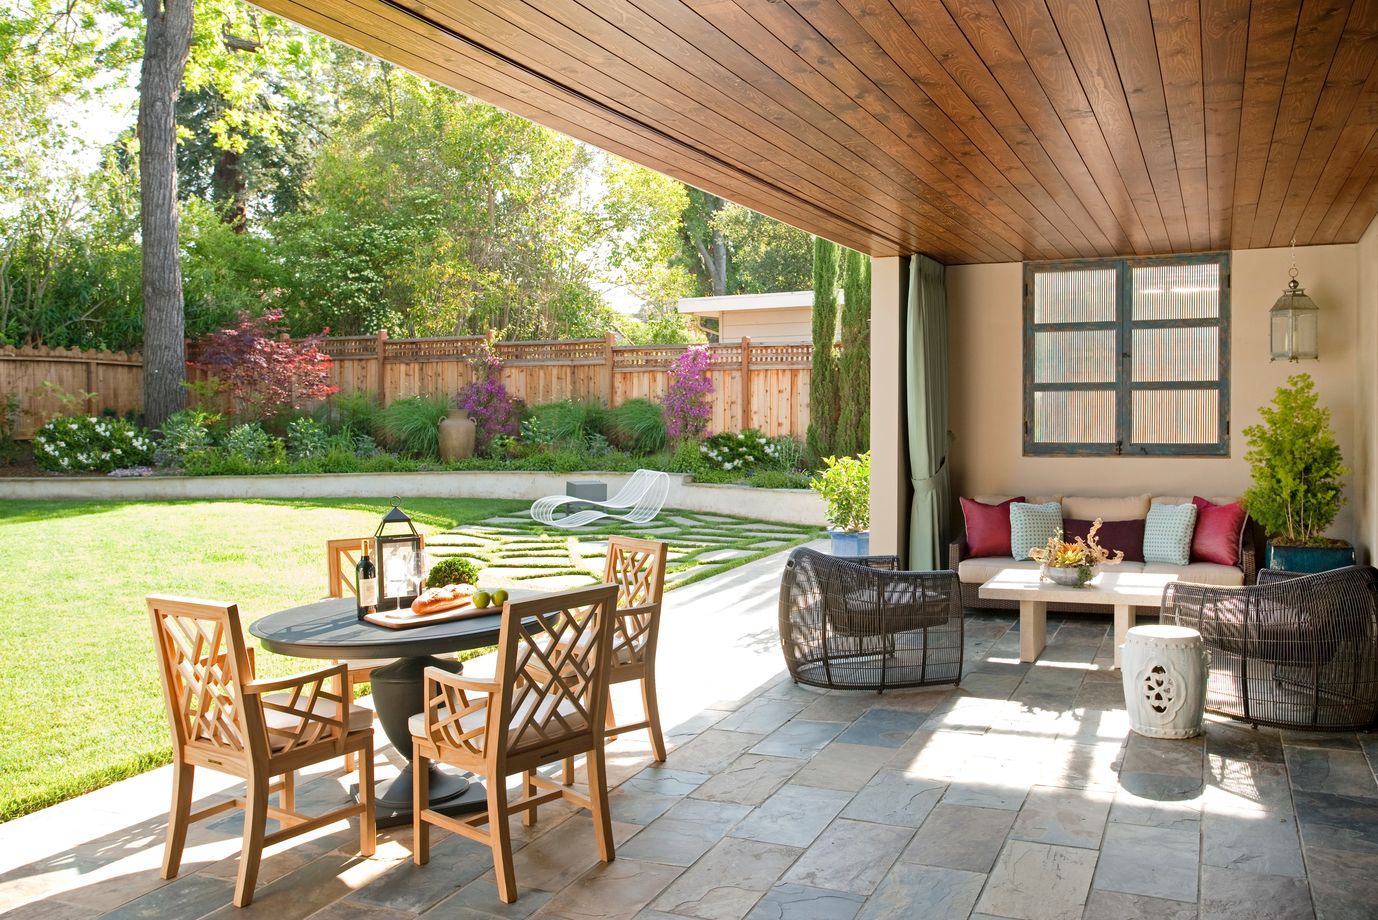 Outdoor living 8 ideas to get the most out of your space for Patio and outdoor decor